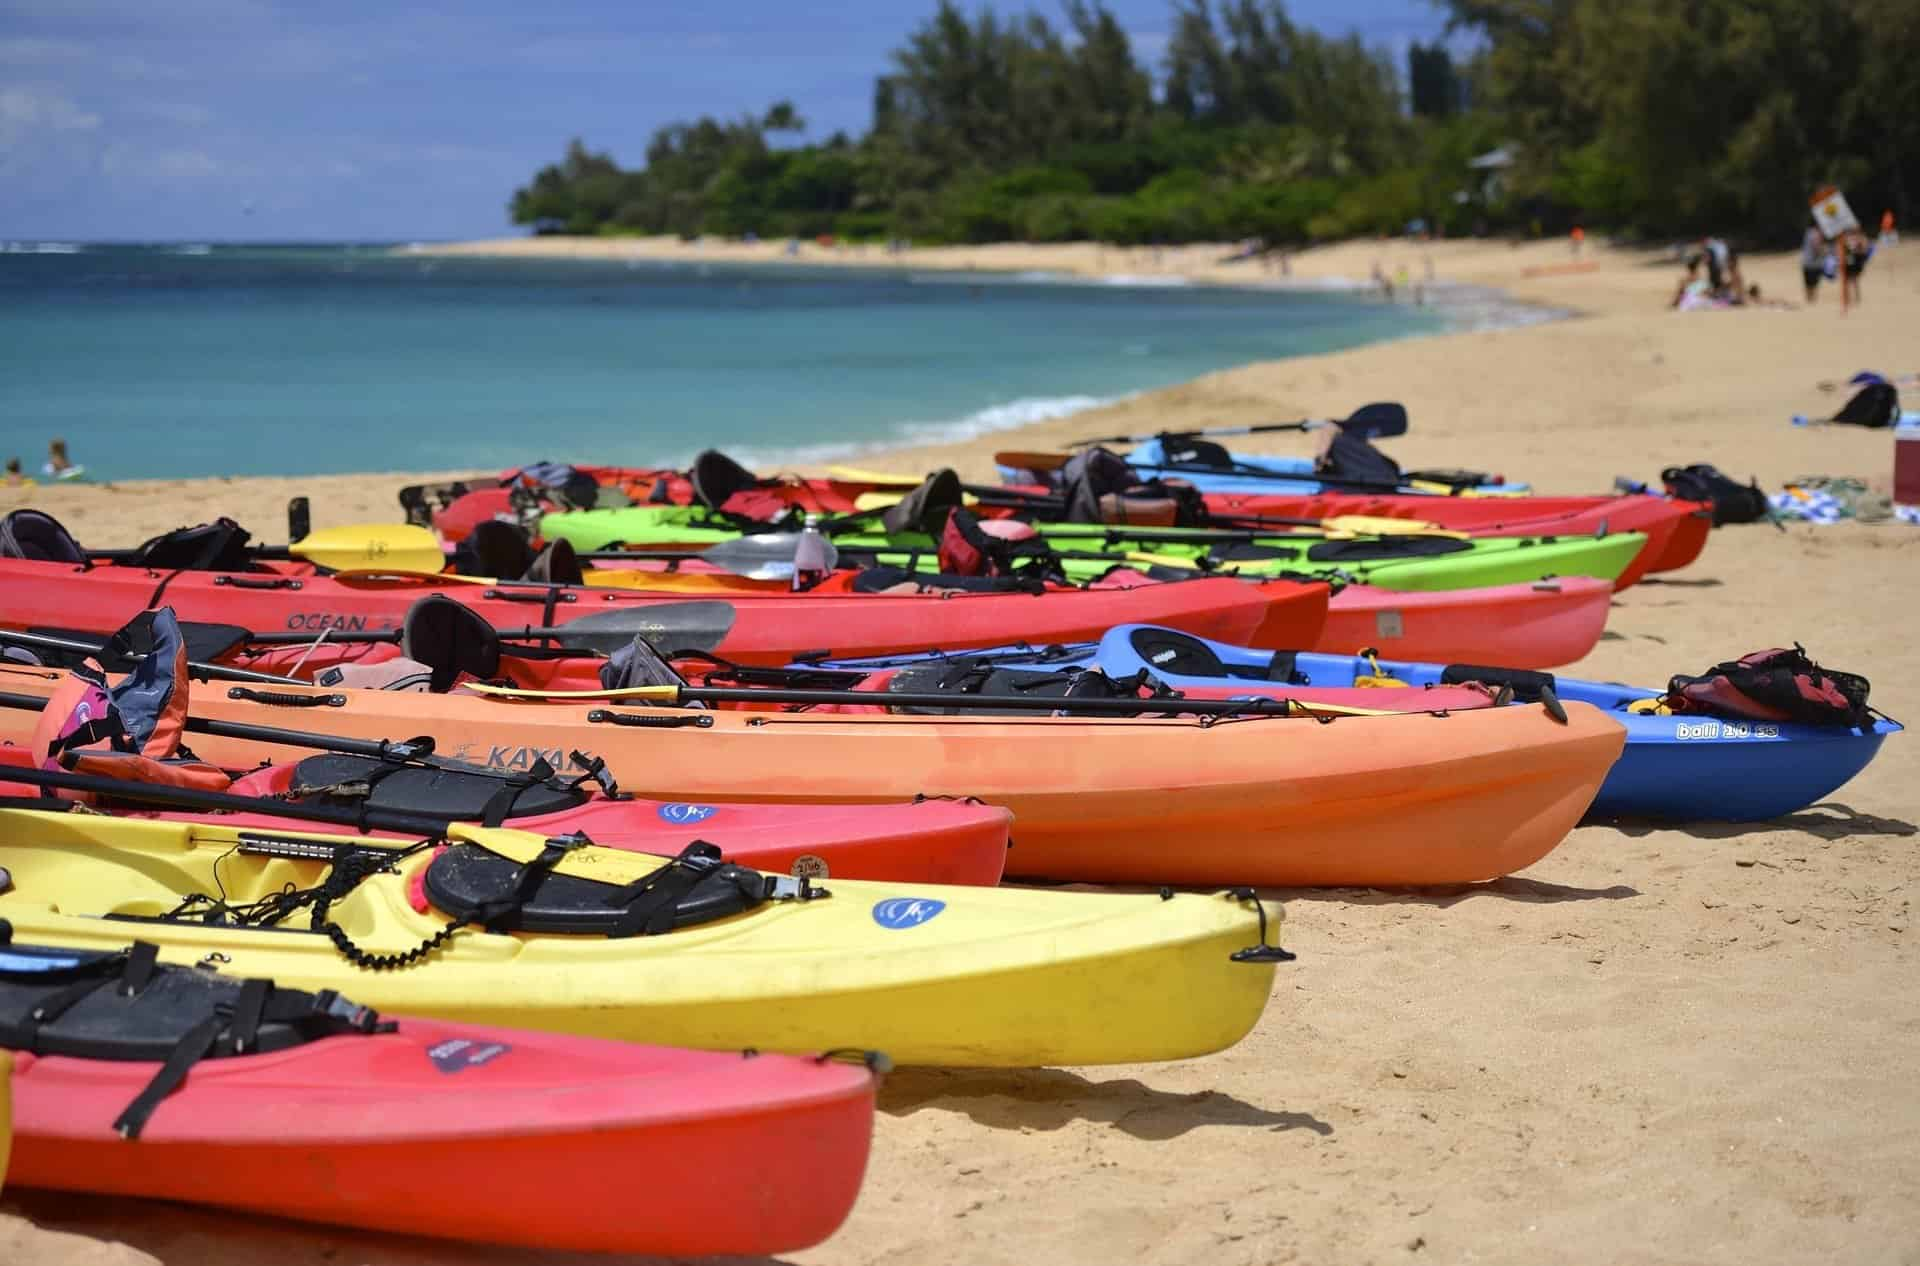 Line of Kayaks on the Beach